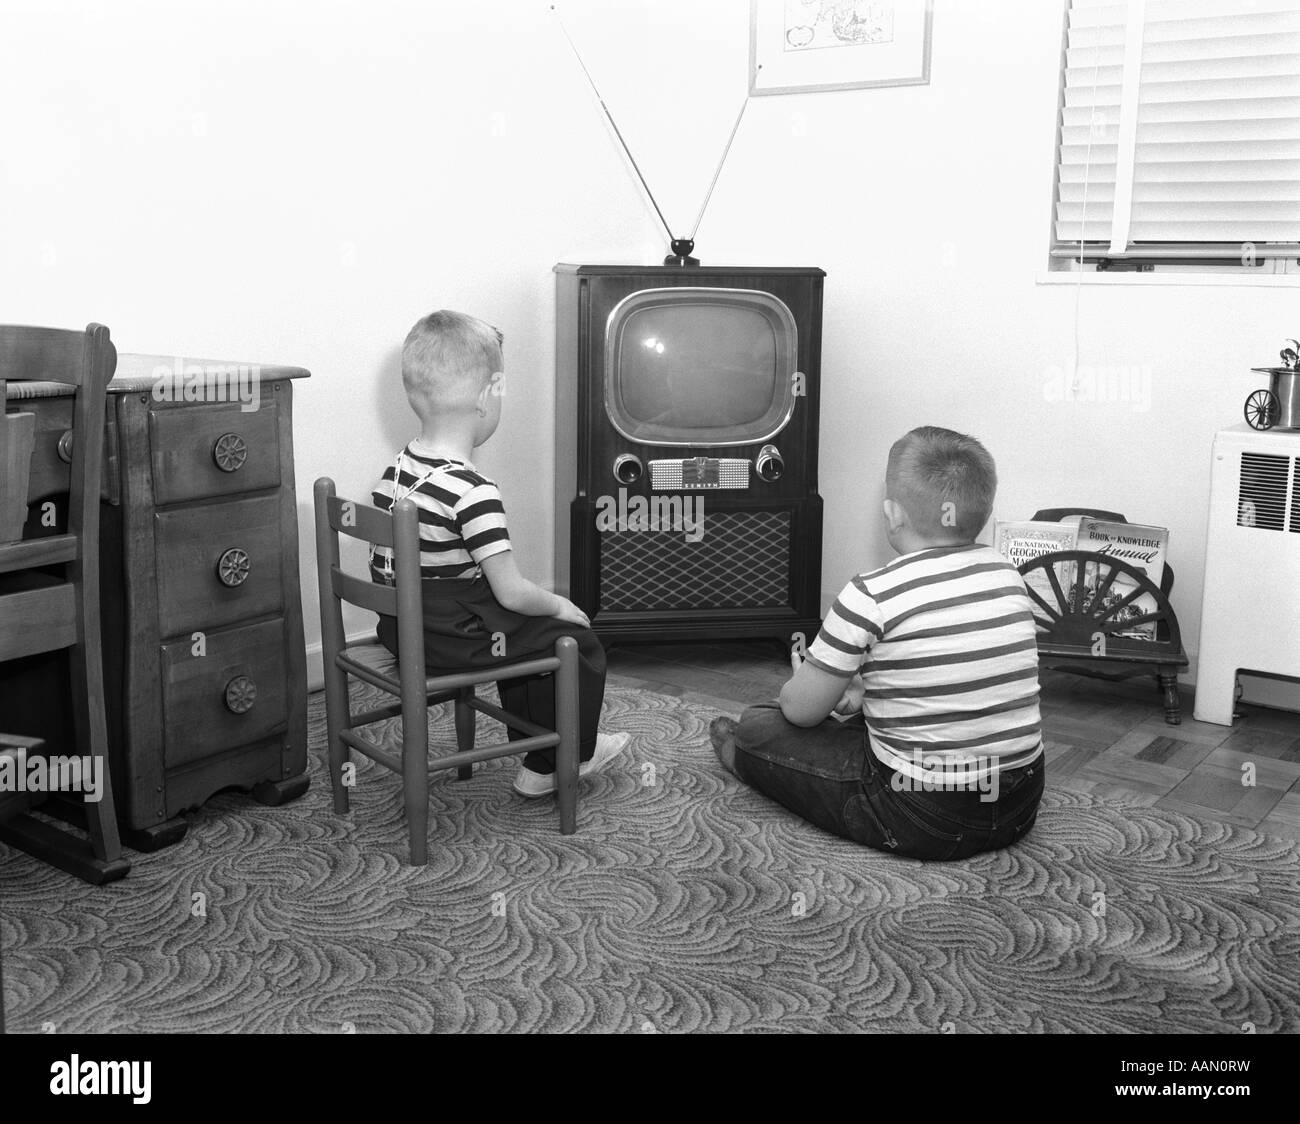 1950s BACK VIEW OF 2 BOYS IN STRIPED T-SHIRTS WATCHING TV - Stock Image